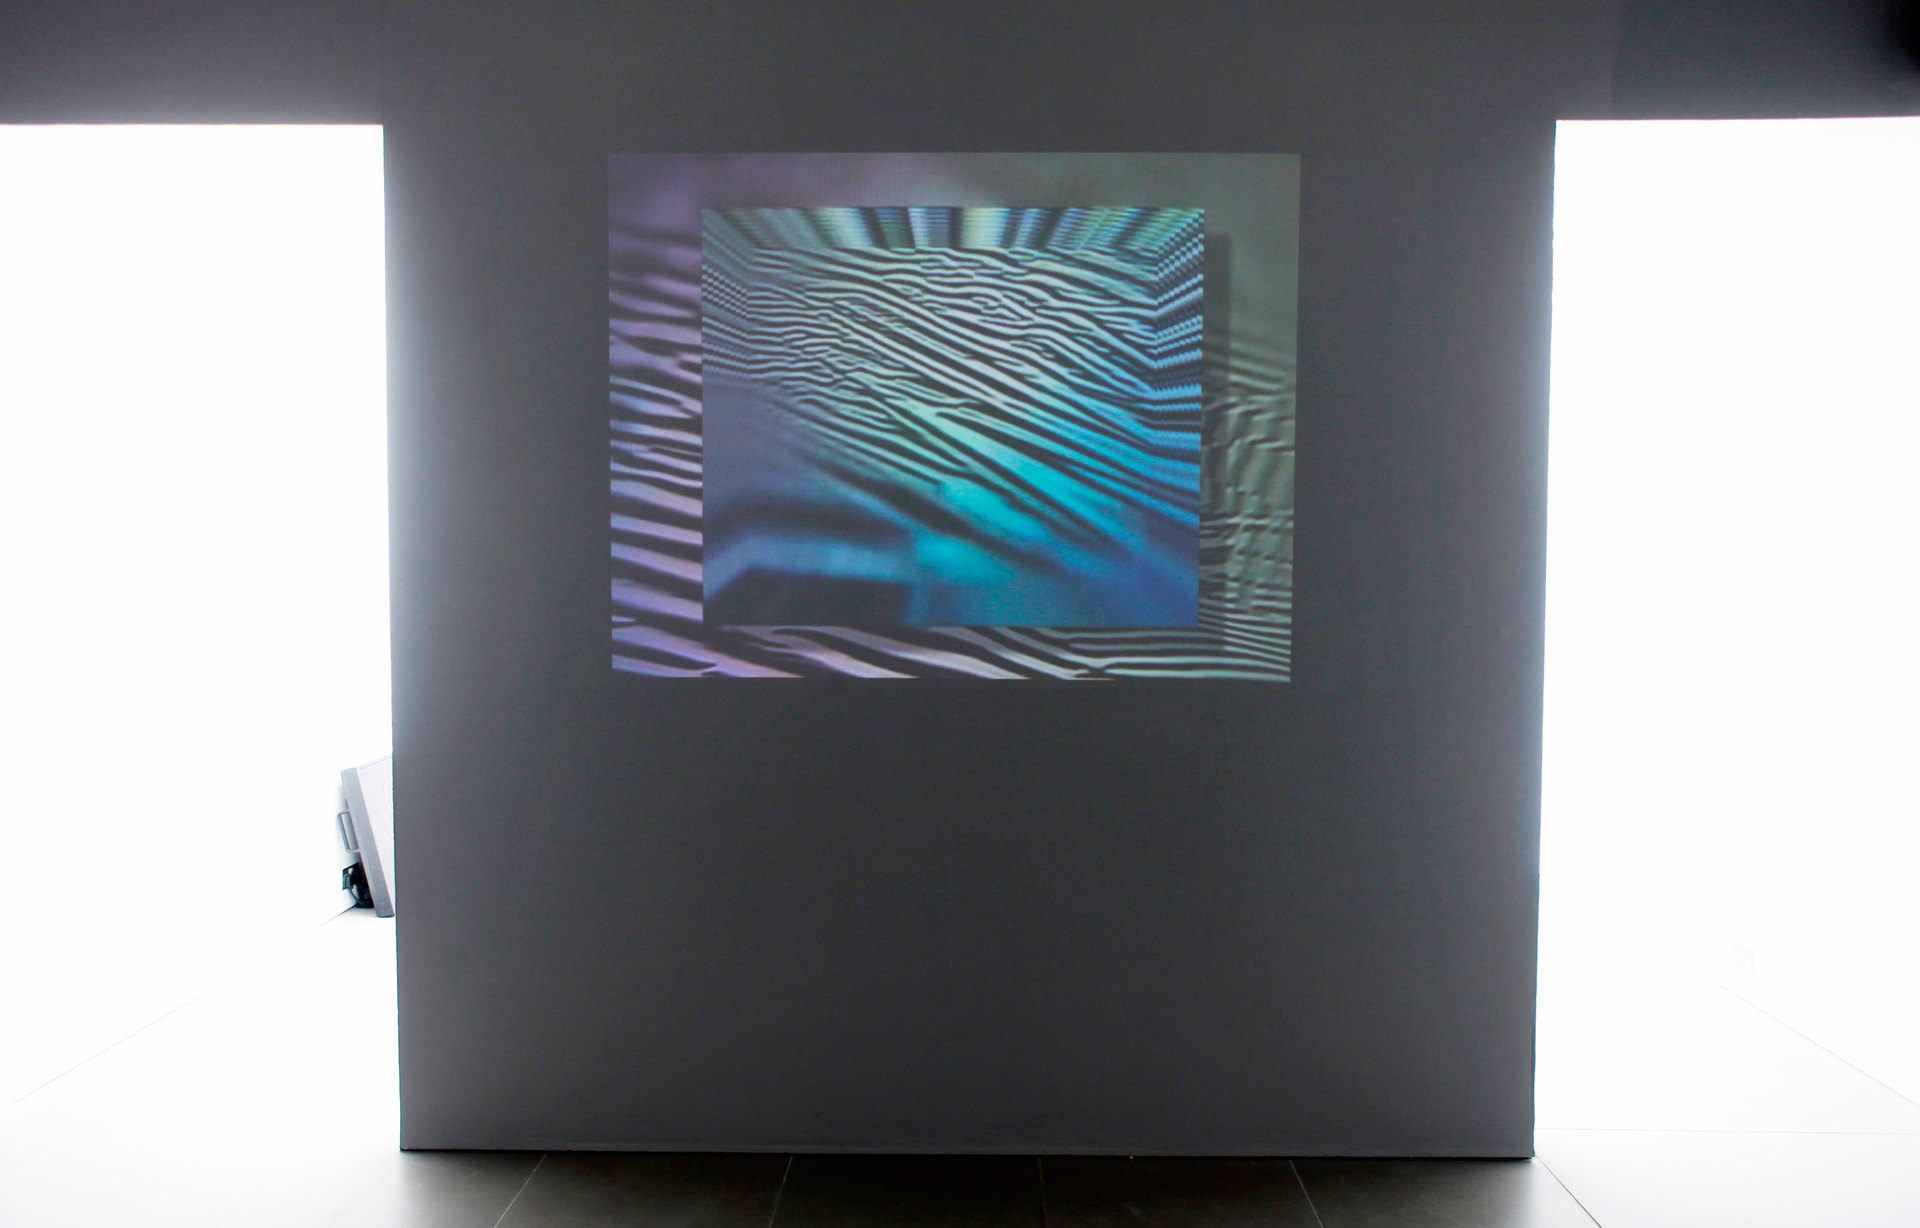 Sabrina Ratté, Age Maze, 2011, Looped video duration 8 min 18 sec, edition of 5, Cell Project Space